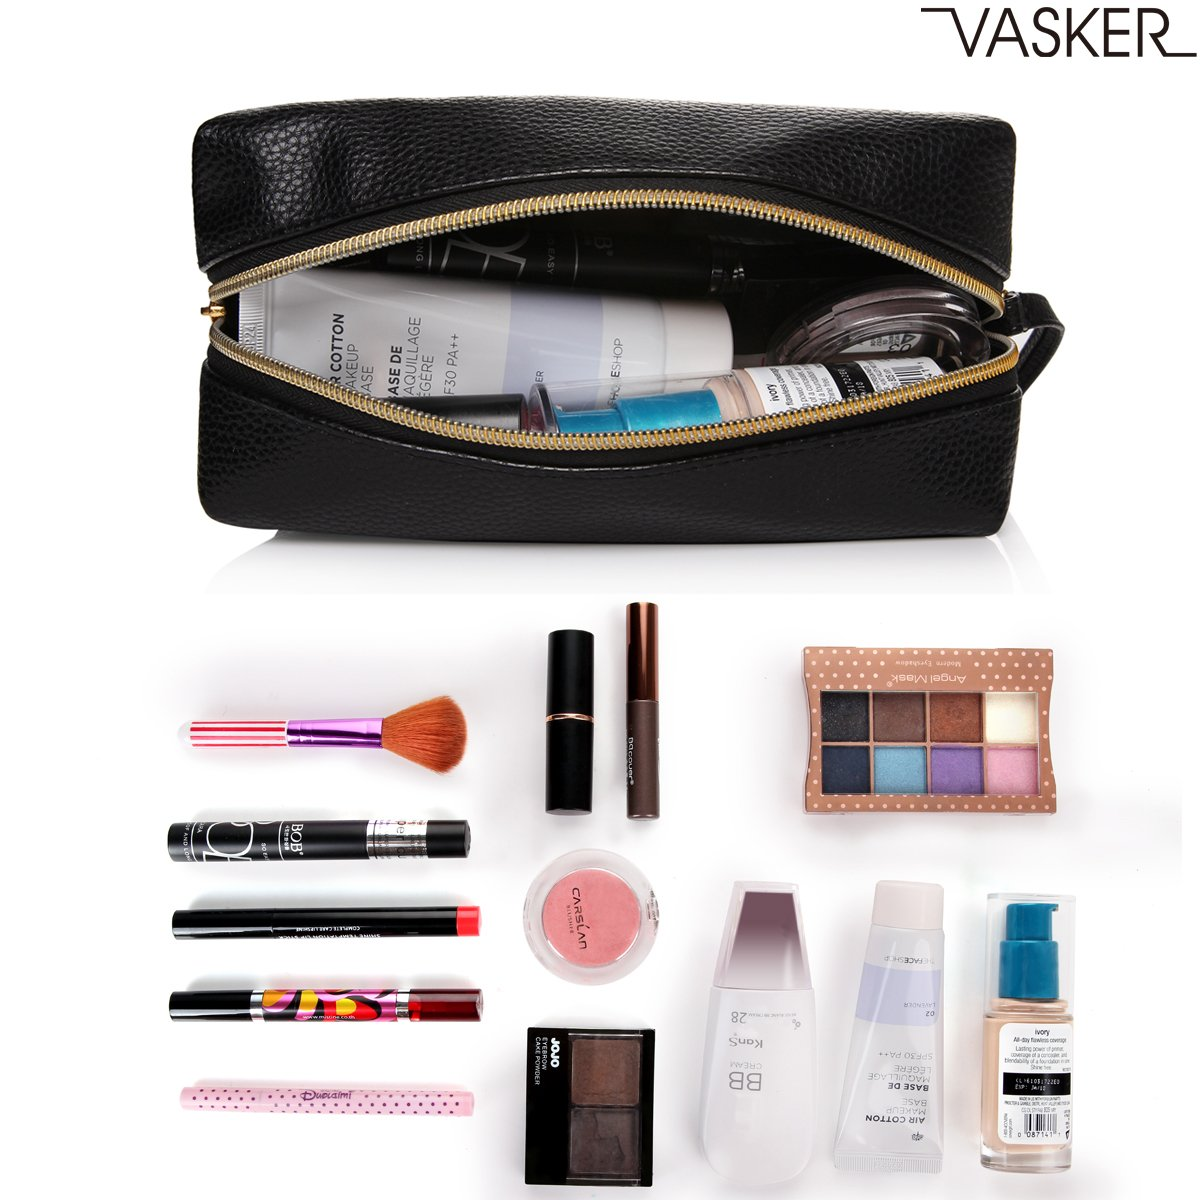 VASKER PU Leather Makeup Bag Handy Cosmetic Pouch Travel Portable Handbag Purse Toiletry Storage Bag Large Organizer with Zipper Women by VASKER (Image #2)